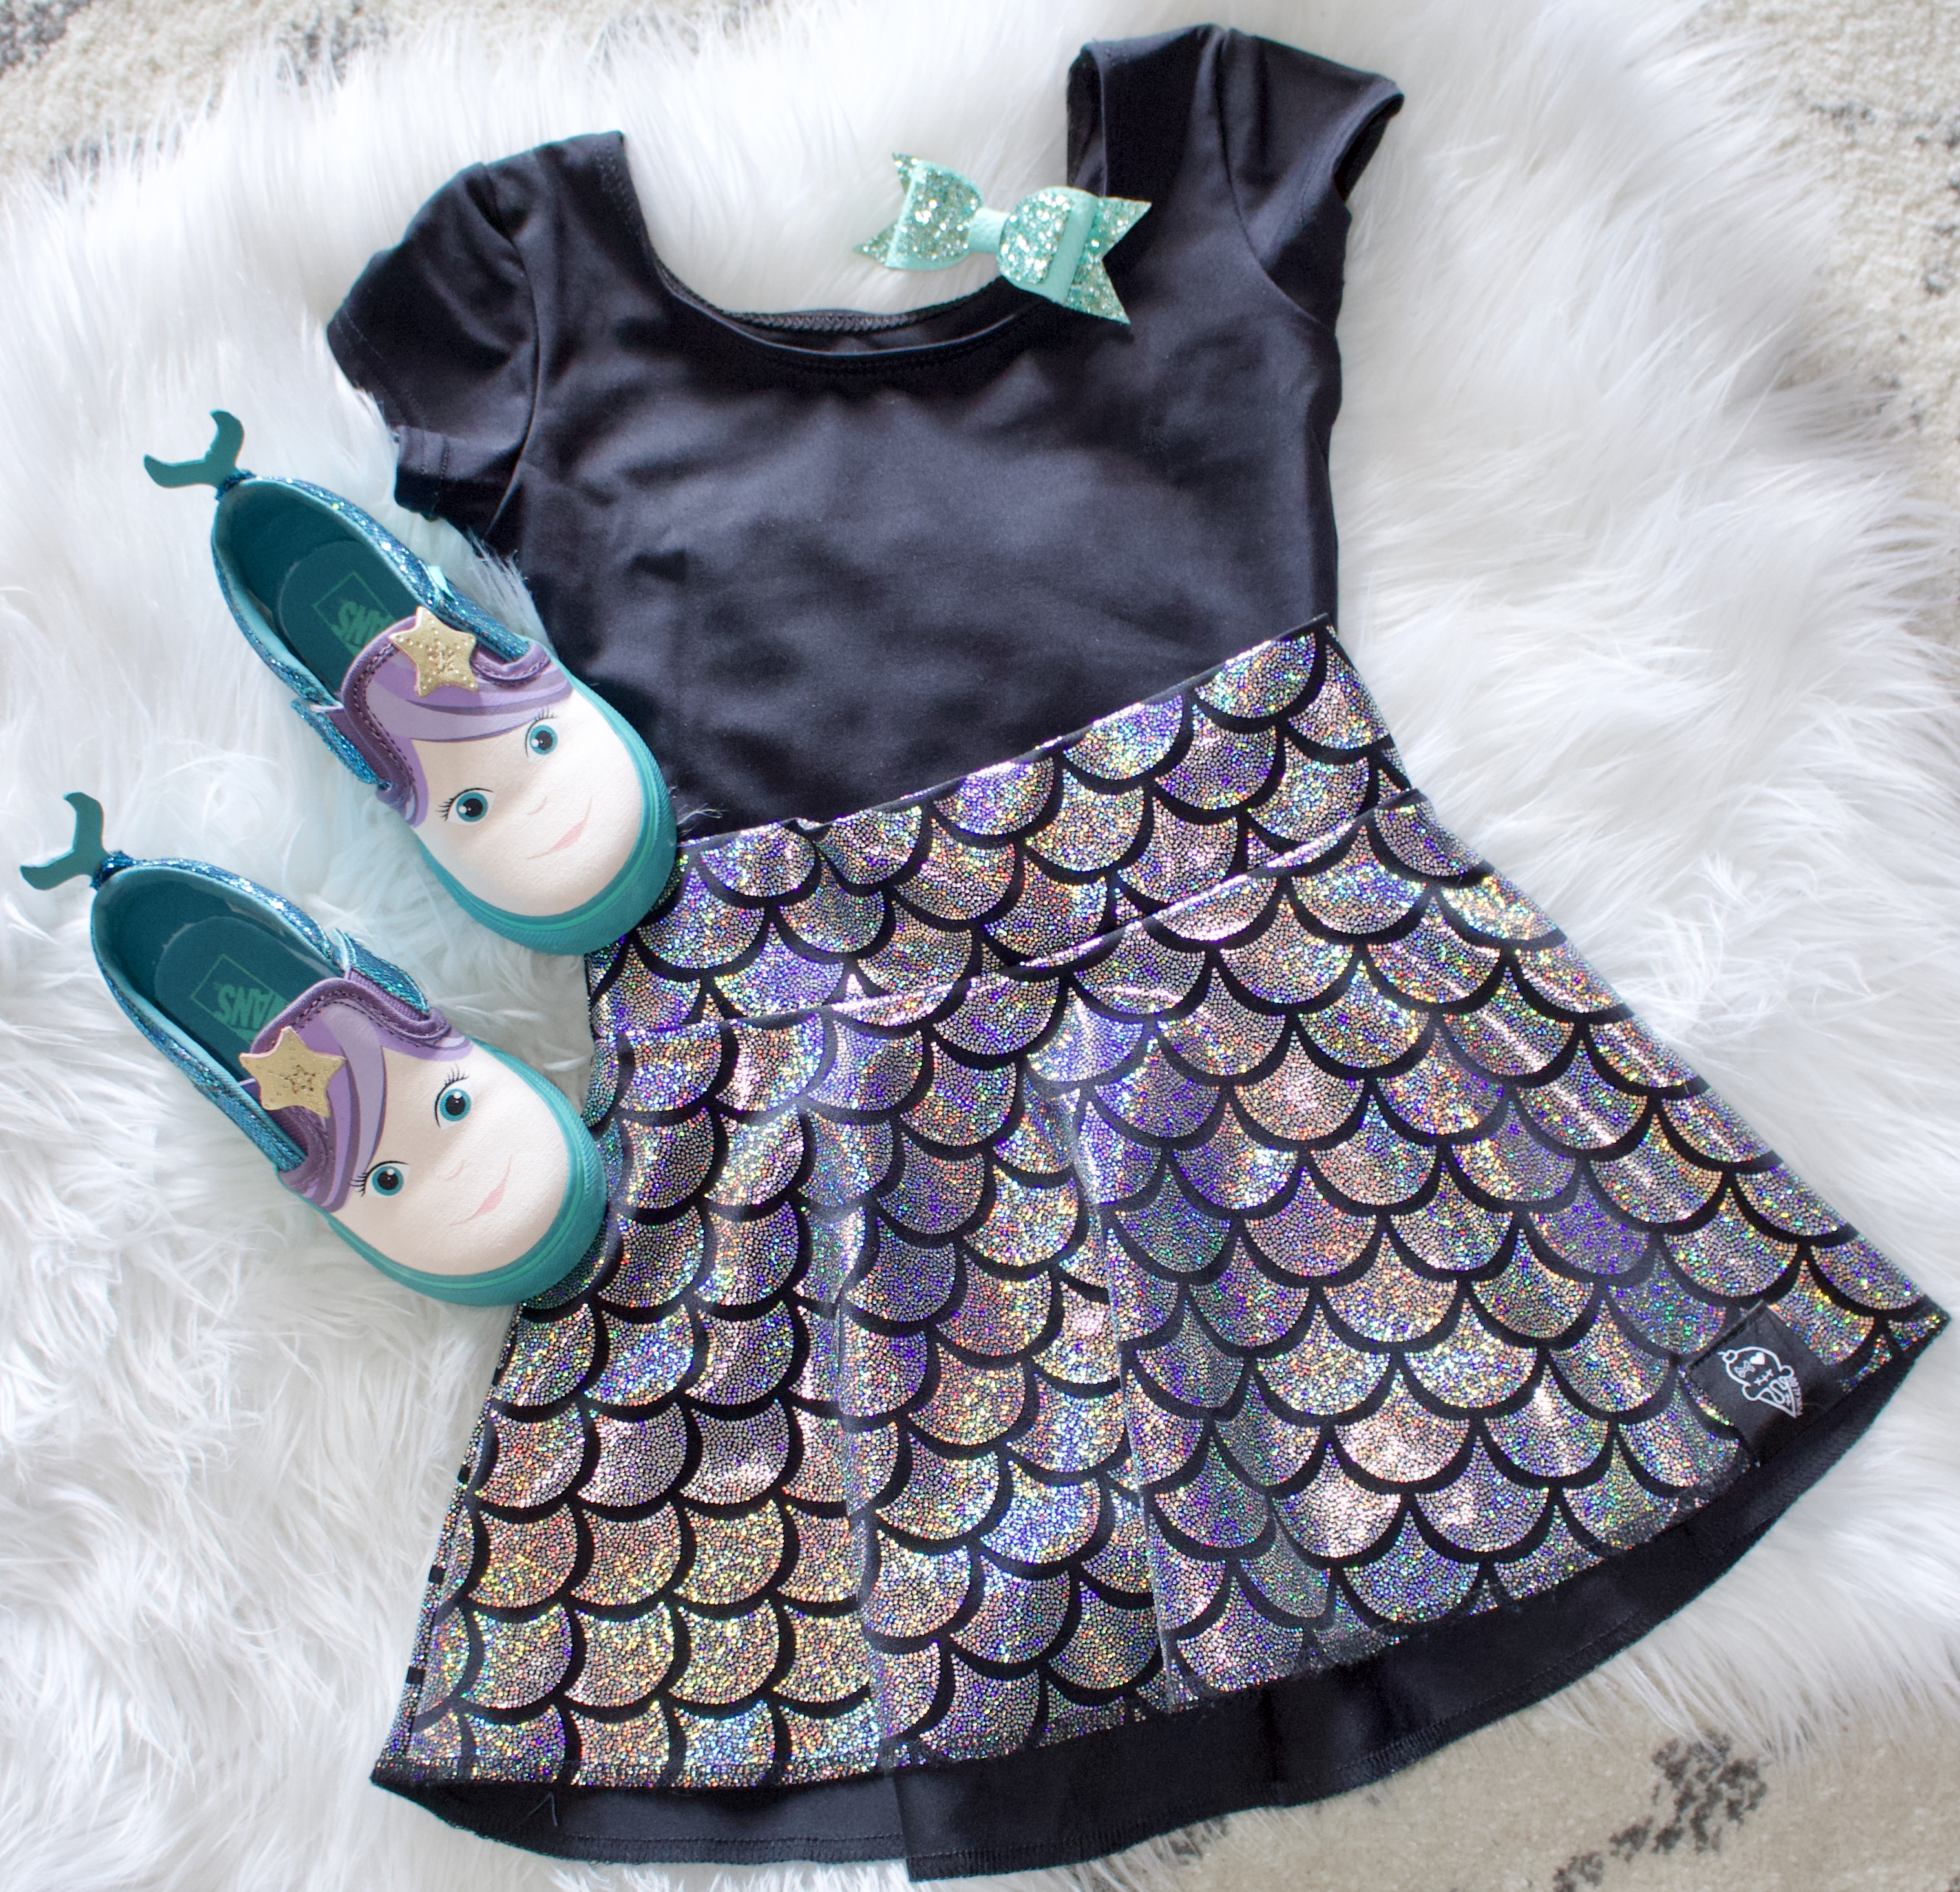 mermaid birthday party toddler outfit #birthdayparty #mermaidoutfit #kidsfashion #toddlerstyle